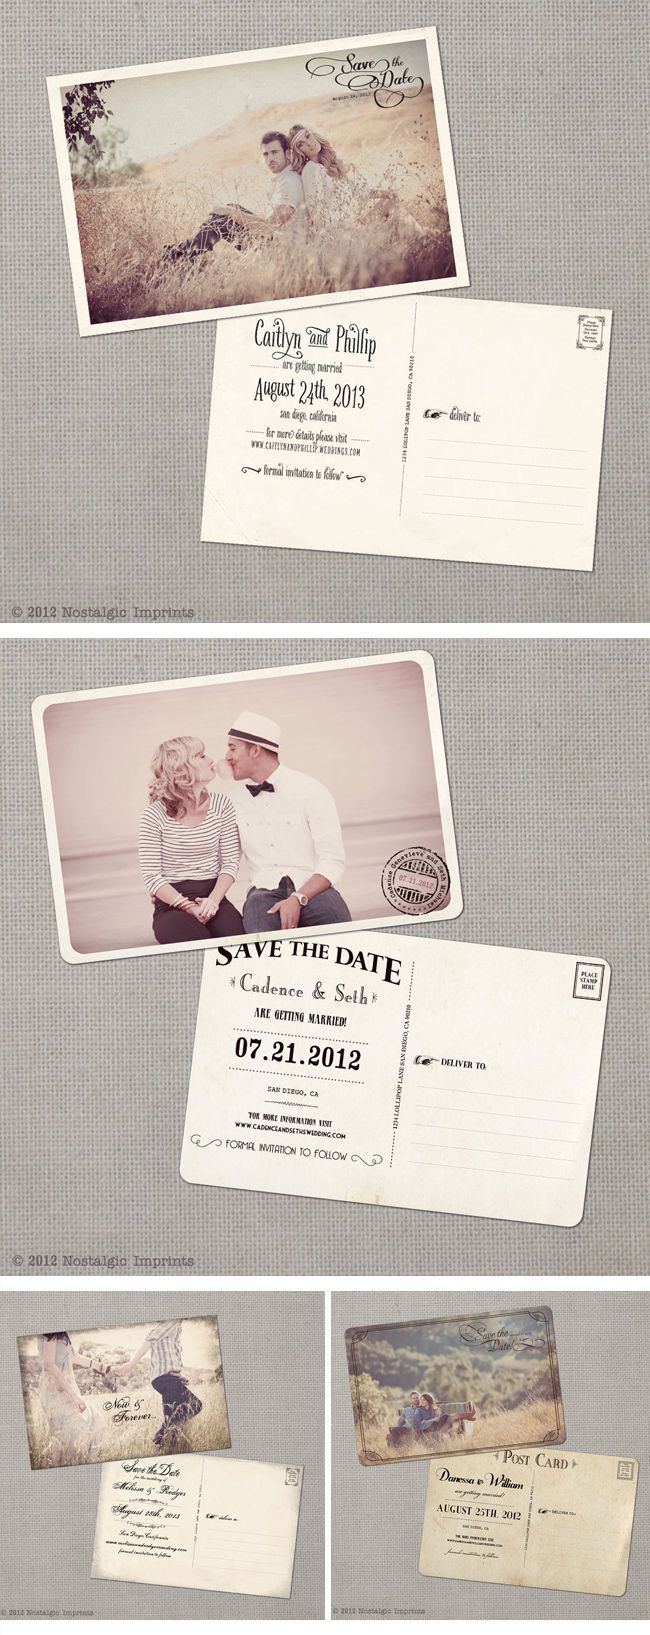 Nostalgic Imprints, Vintage-Hochzeitseinladungen, vintage wedding invitations